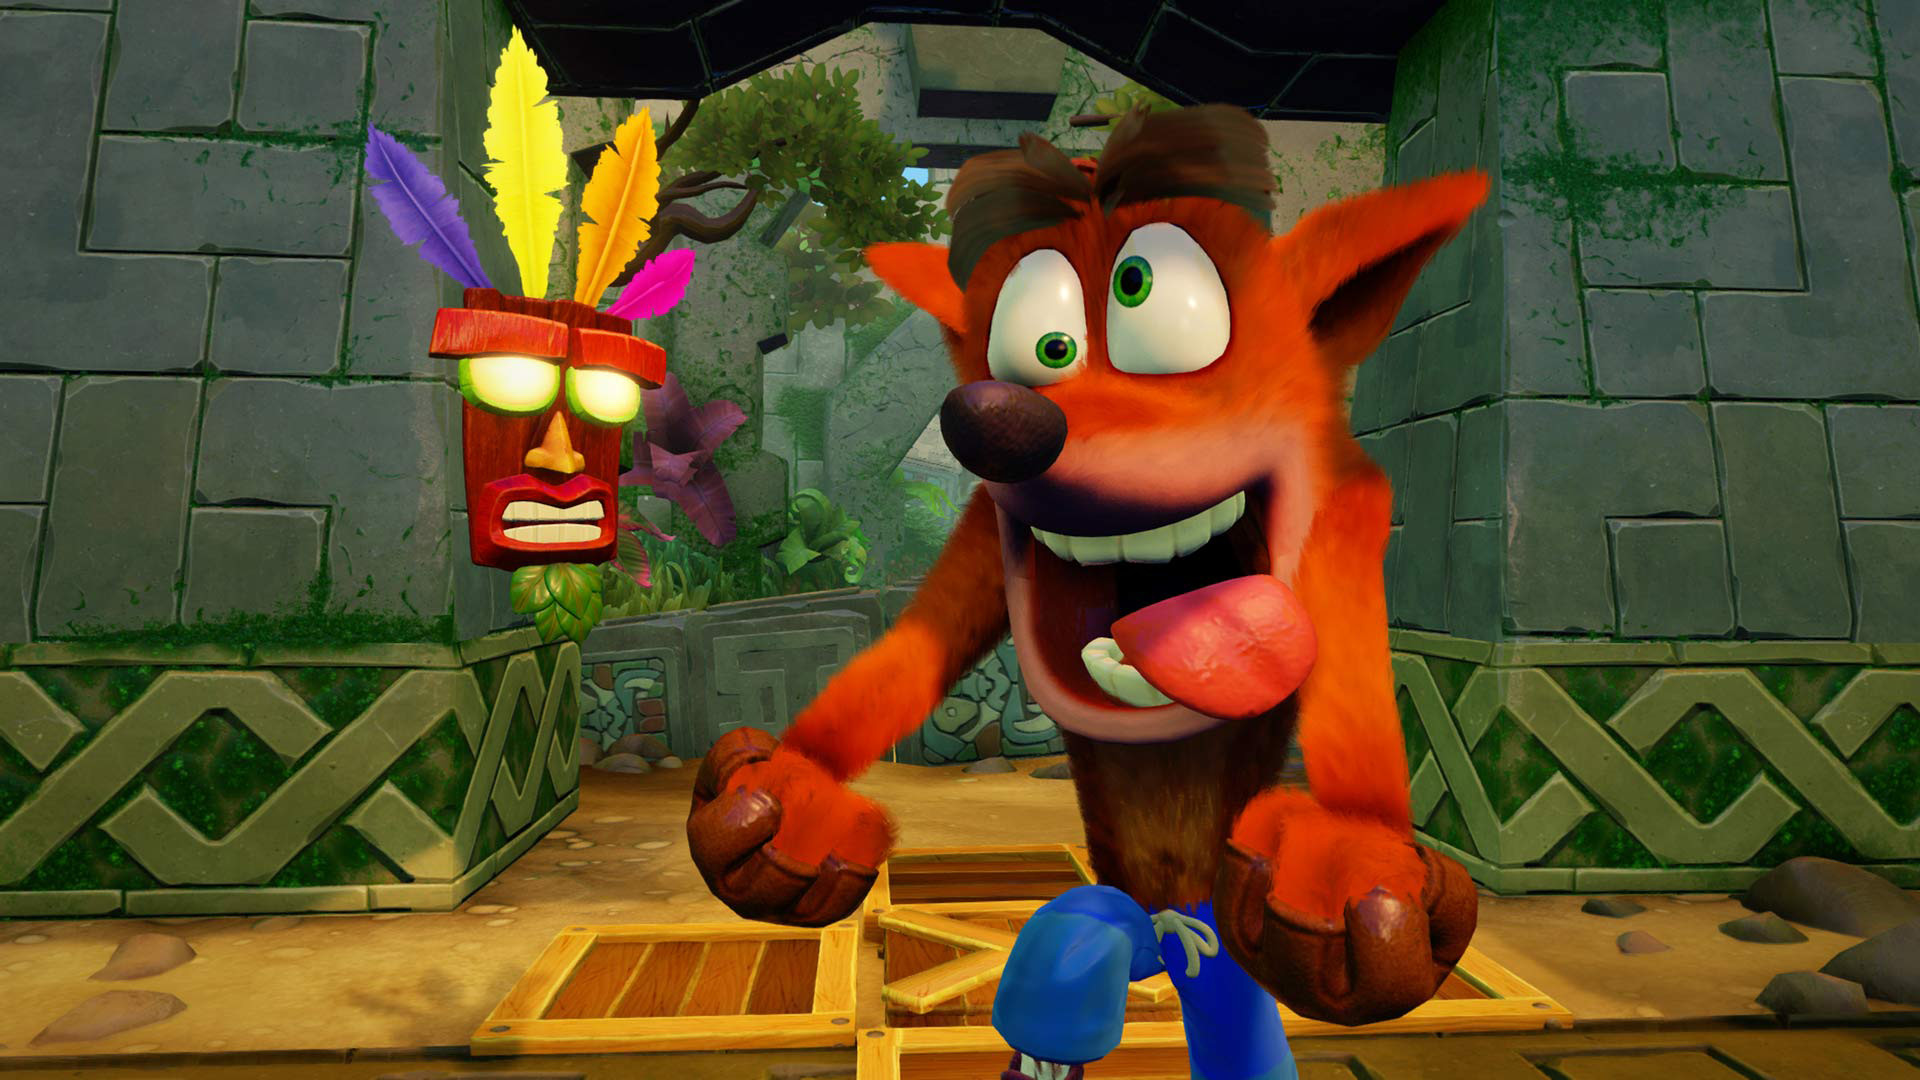 2707-crash-bandicoot-n-sane-trilogy-gallery-9_1